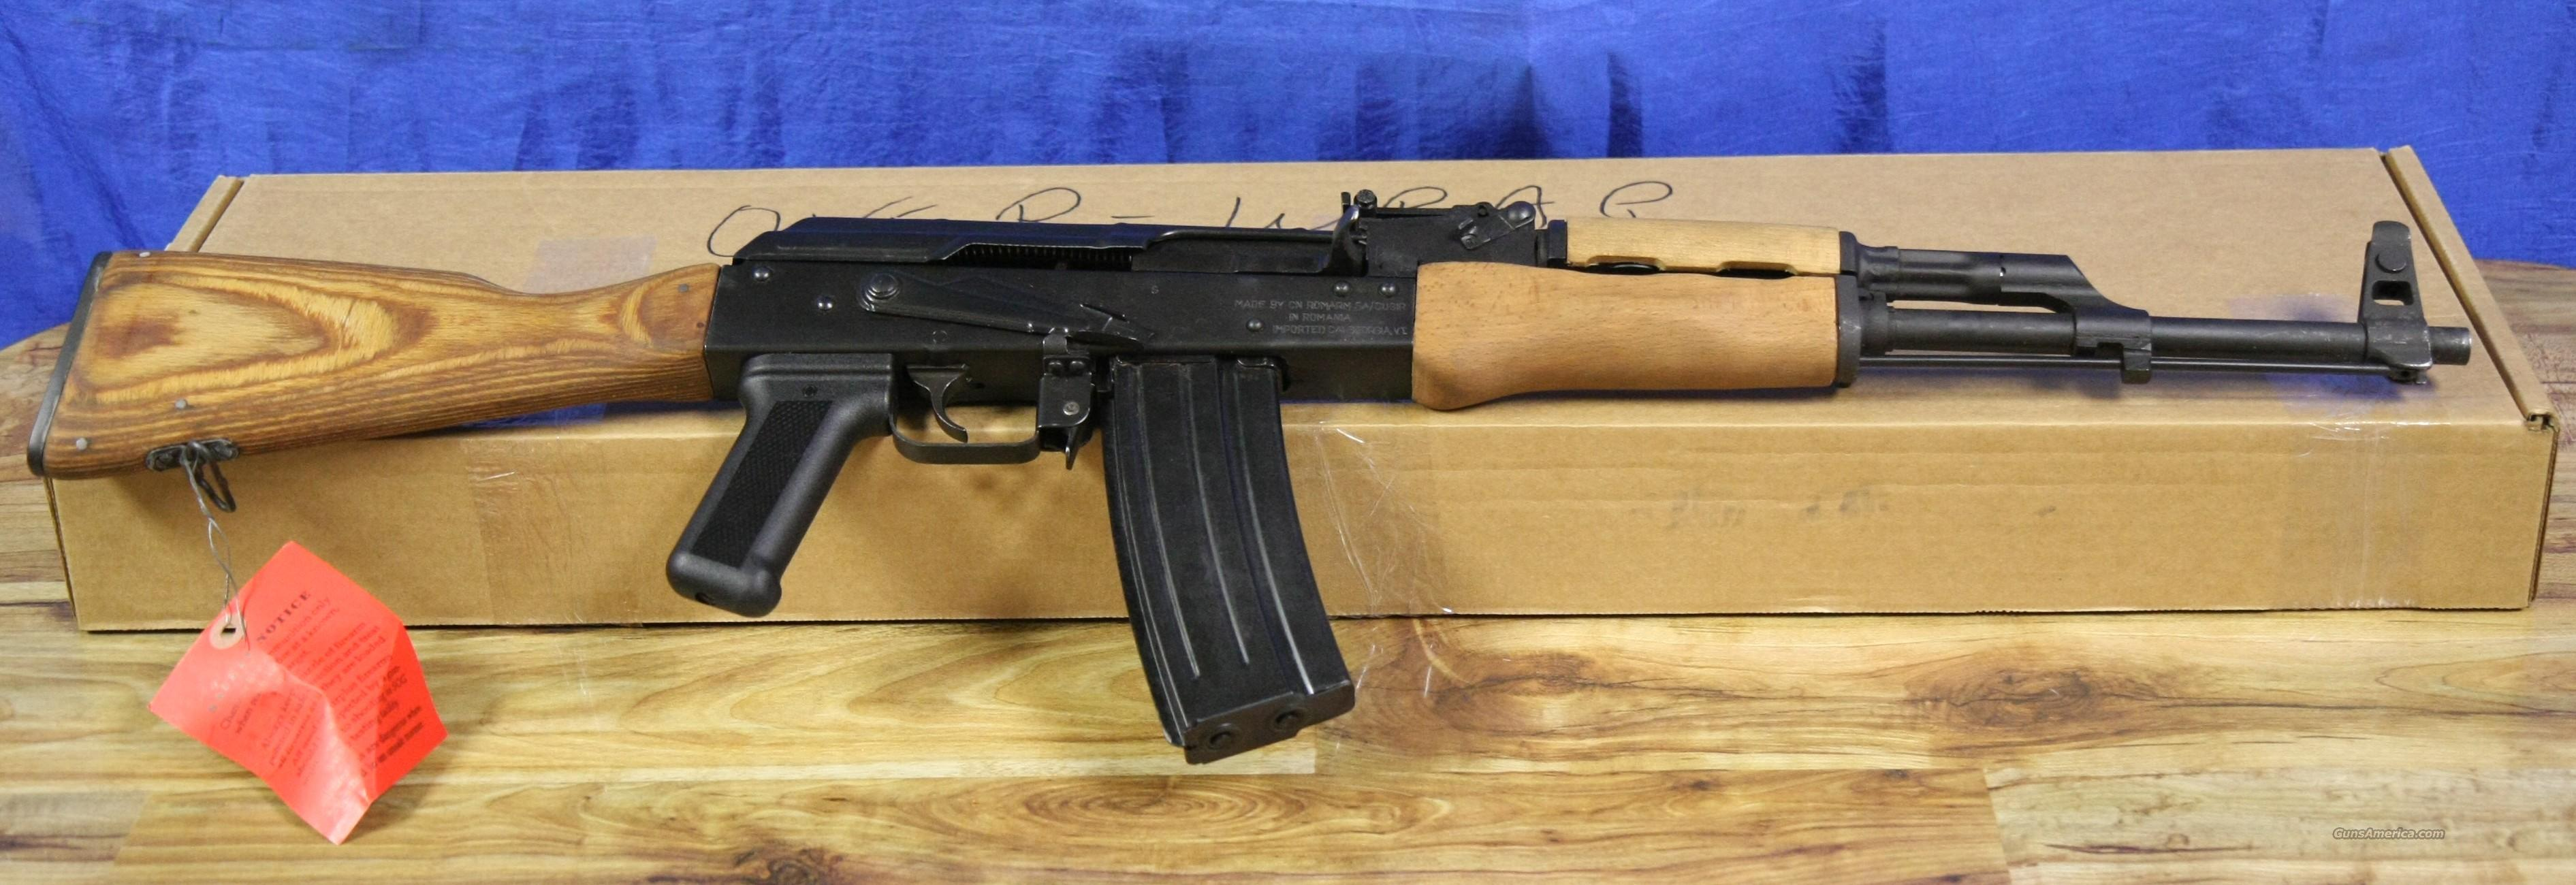 AK47 Century International Arms Romanian WASR-3 .223 5.56x45 BNIB  Guns > Rifles > AK-47 Rifles (and copies) > Full Stock